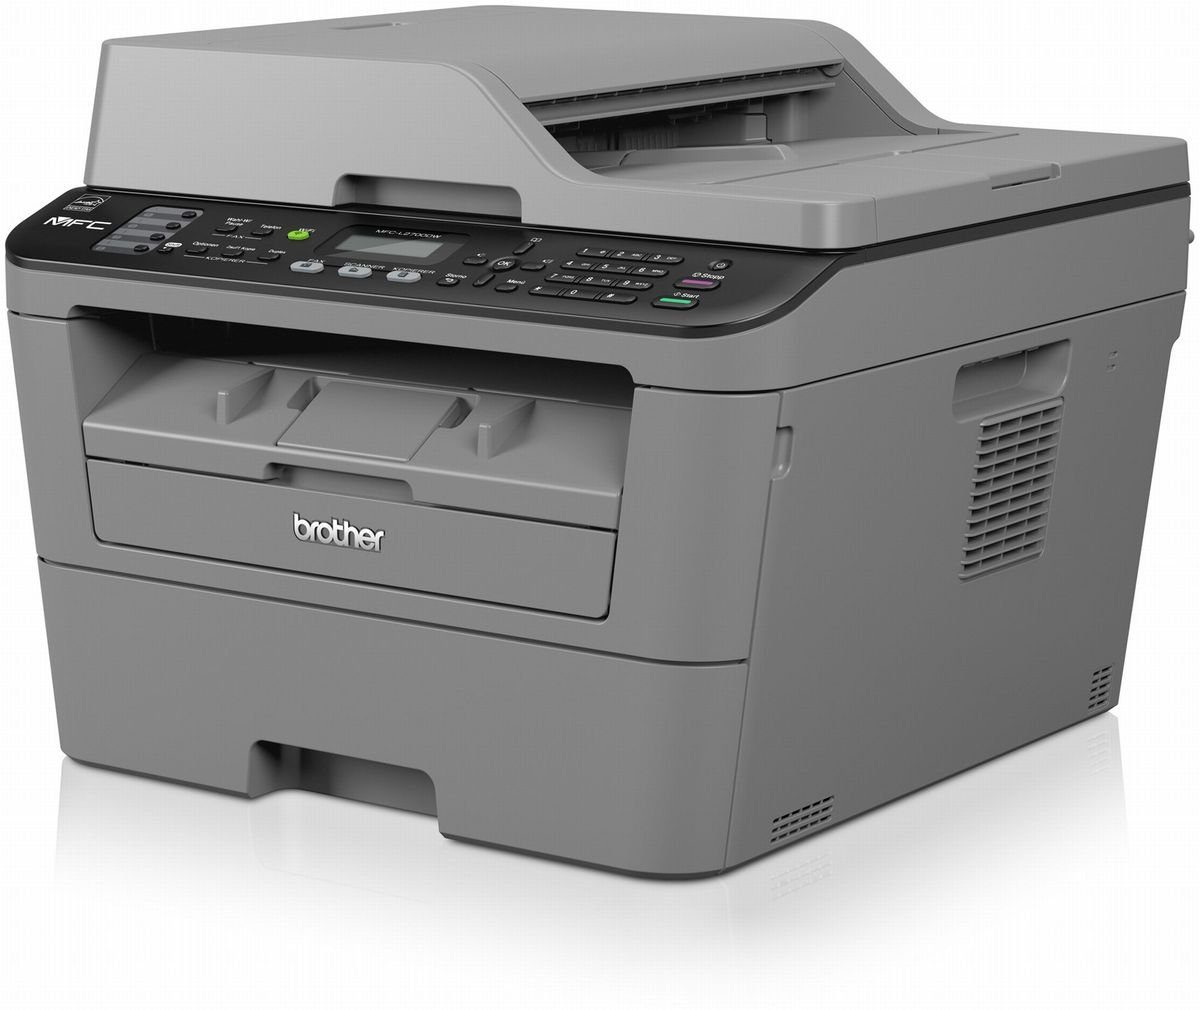 Brother Monolaser-Multifunktionsdrucker »MFC-L2700DW 4in1«